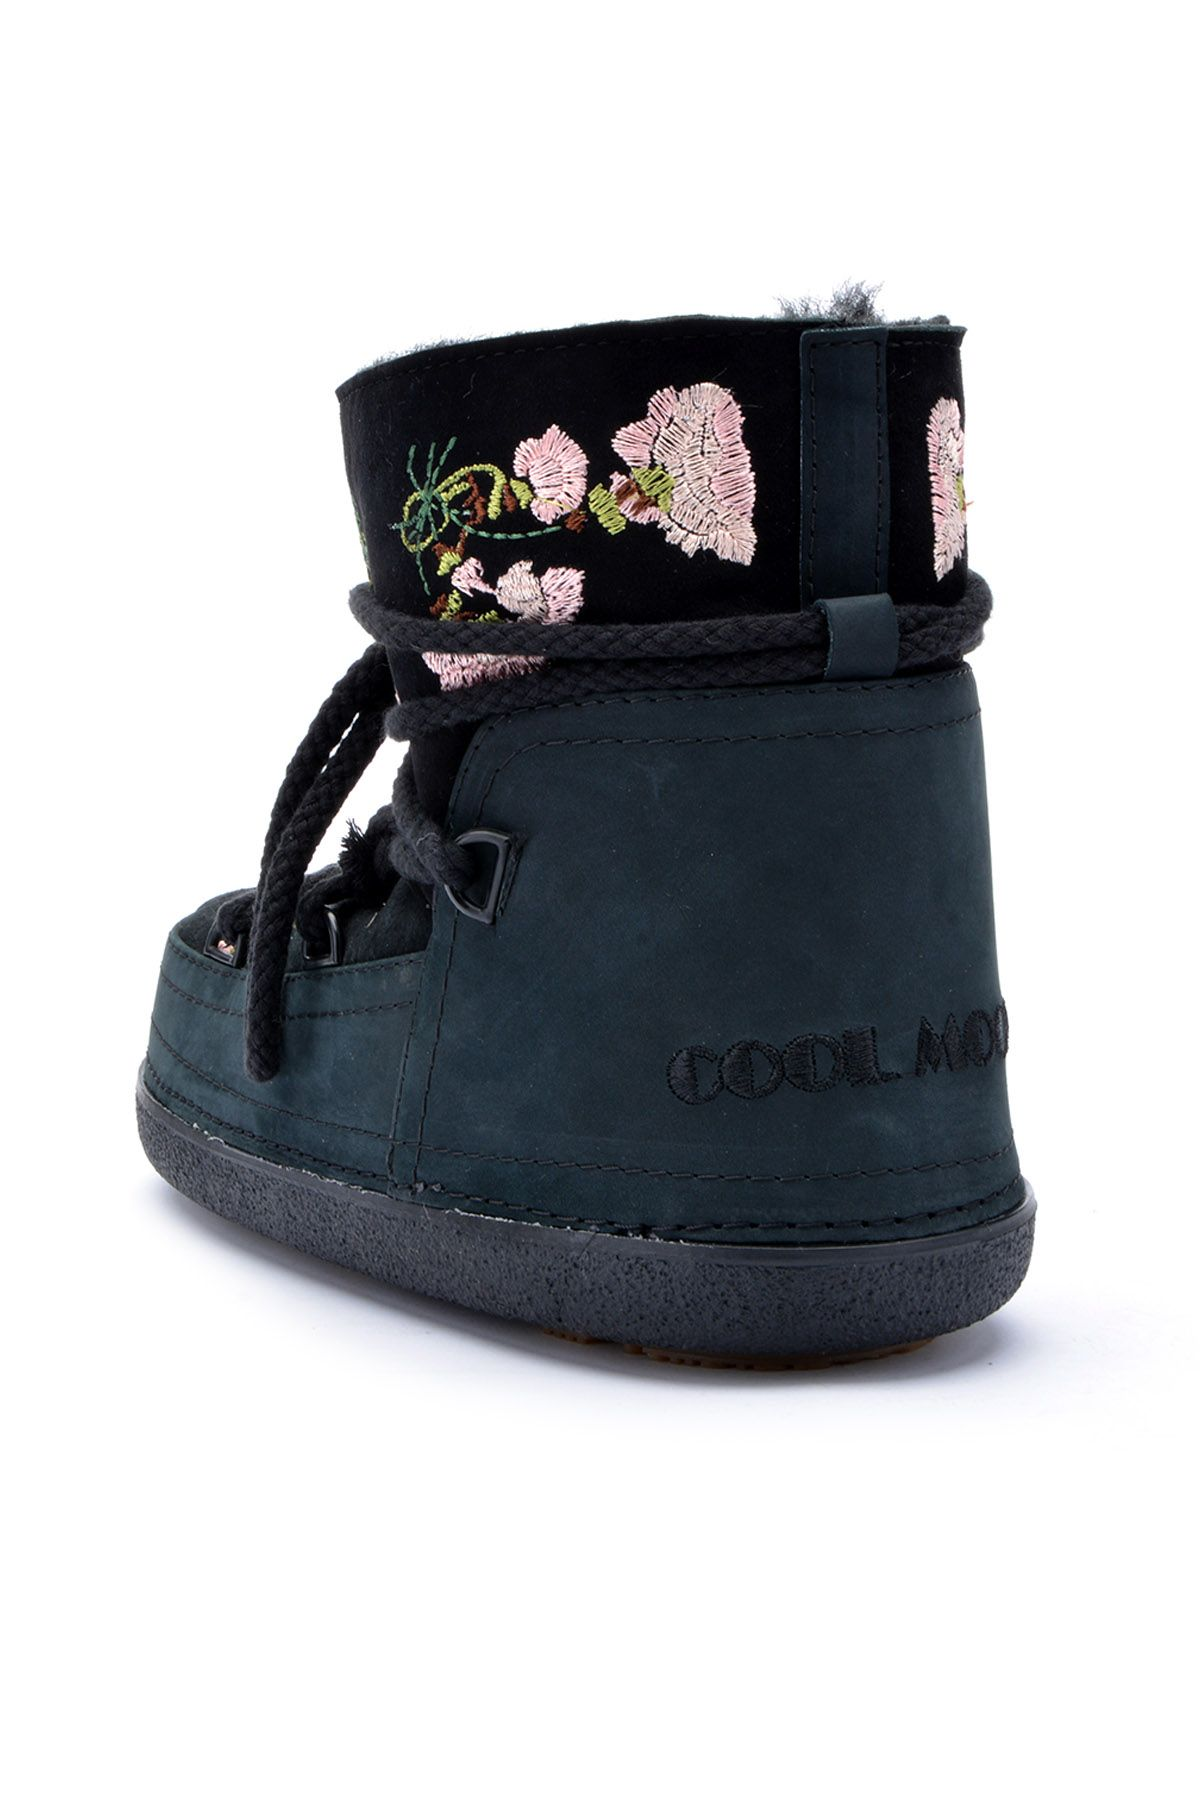 Cool Moon Women Snowboots From Genuine Fur And Suede Decorated With Embroidering Black